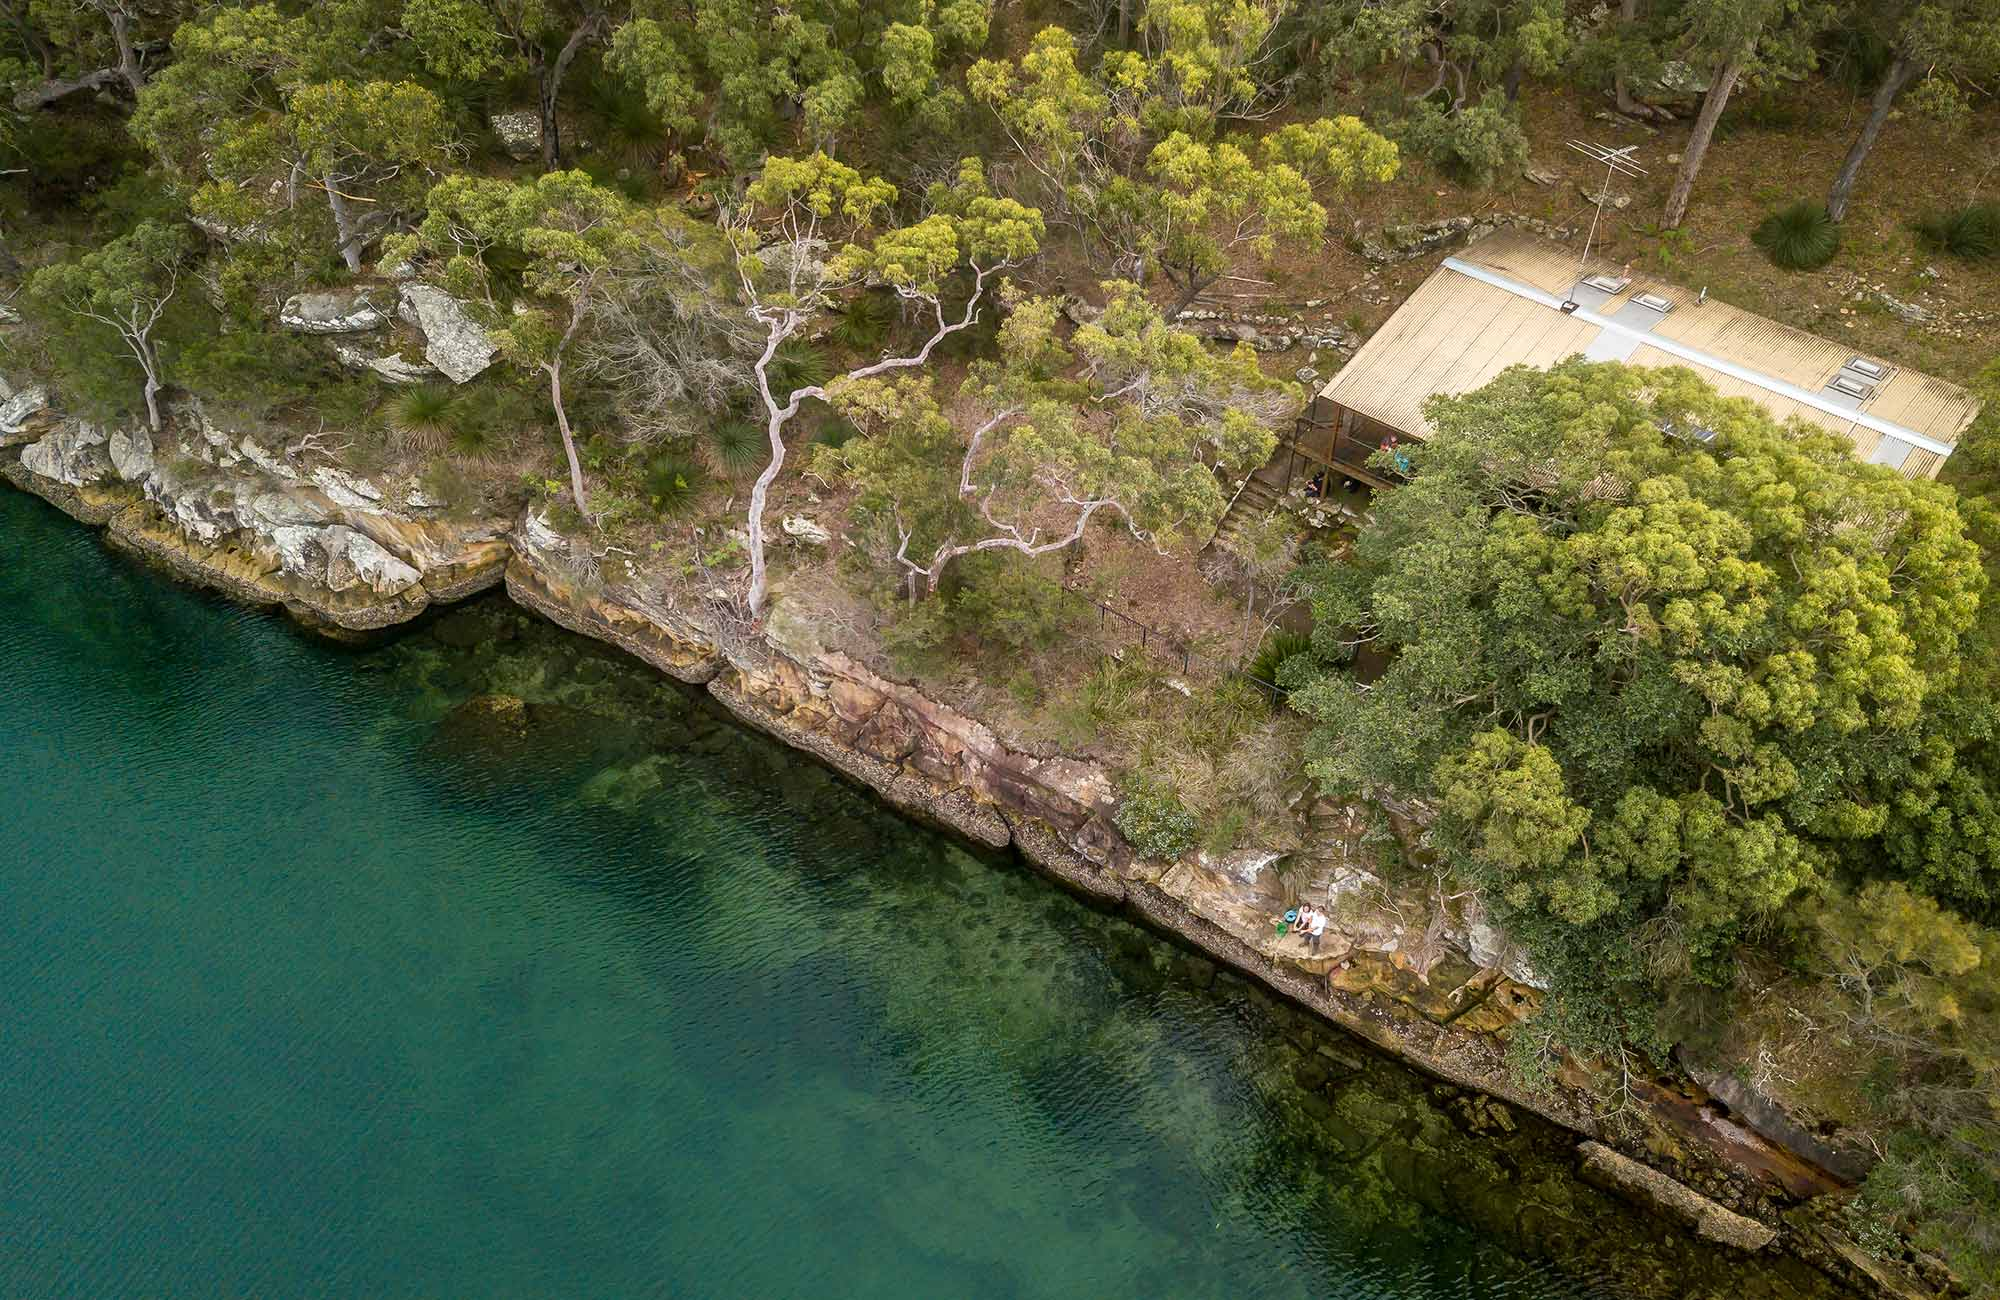 Aerial view of Weemalah Cottage. John Spencer/DPIE